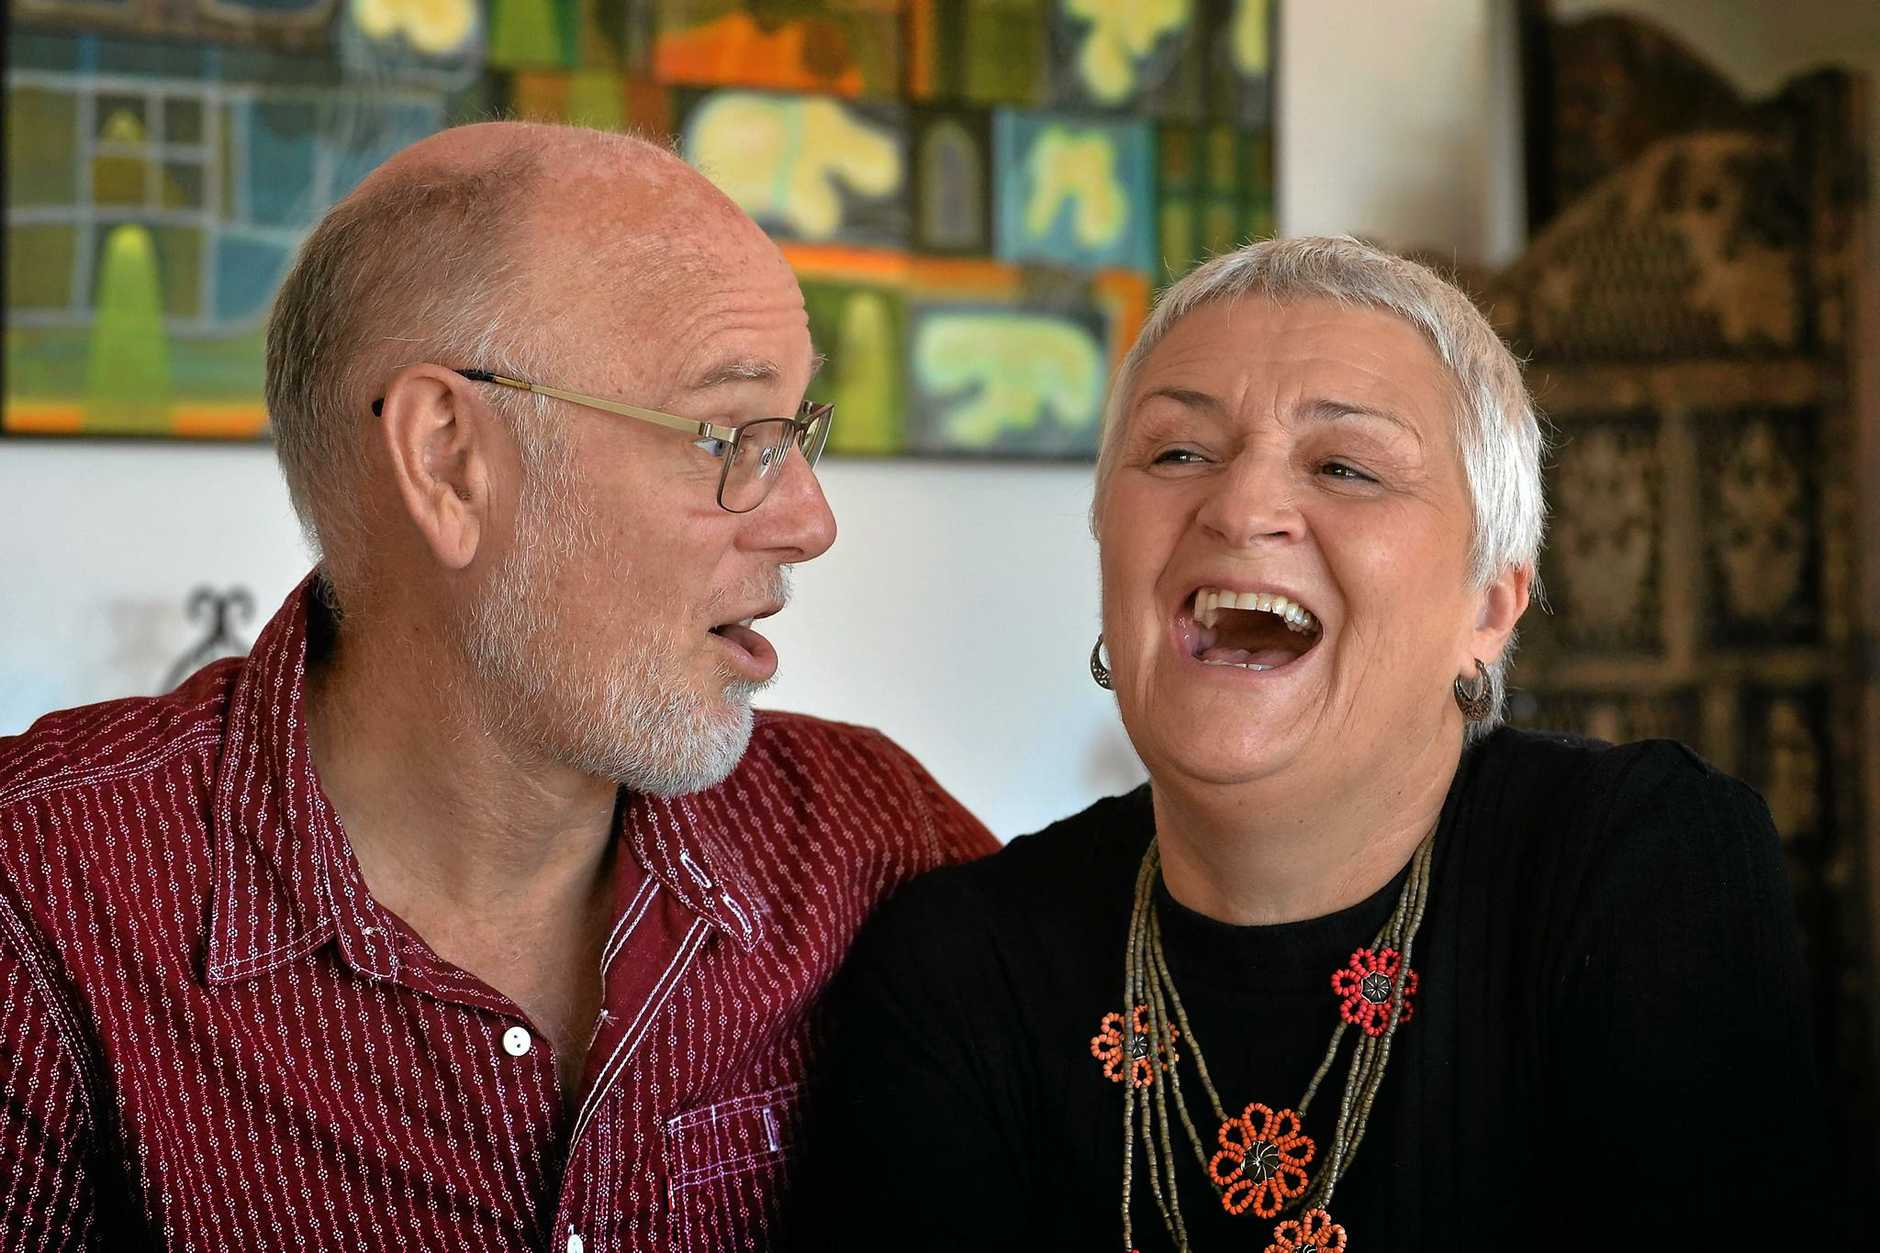 TOUGH START: Toni Powell did not love her husband, Philip, when they first married but they have learnt the secrets of a happy relationship during the last 39 years to make their marriage work.